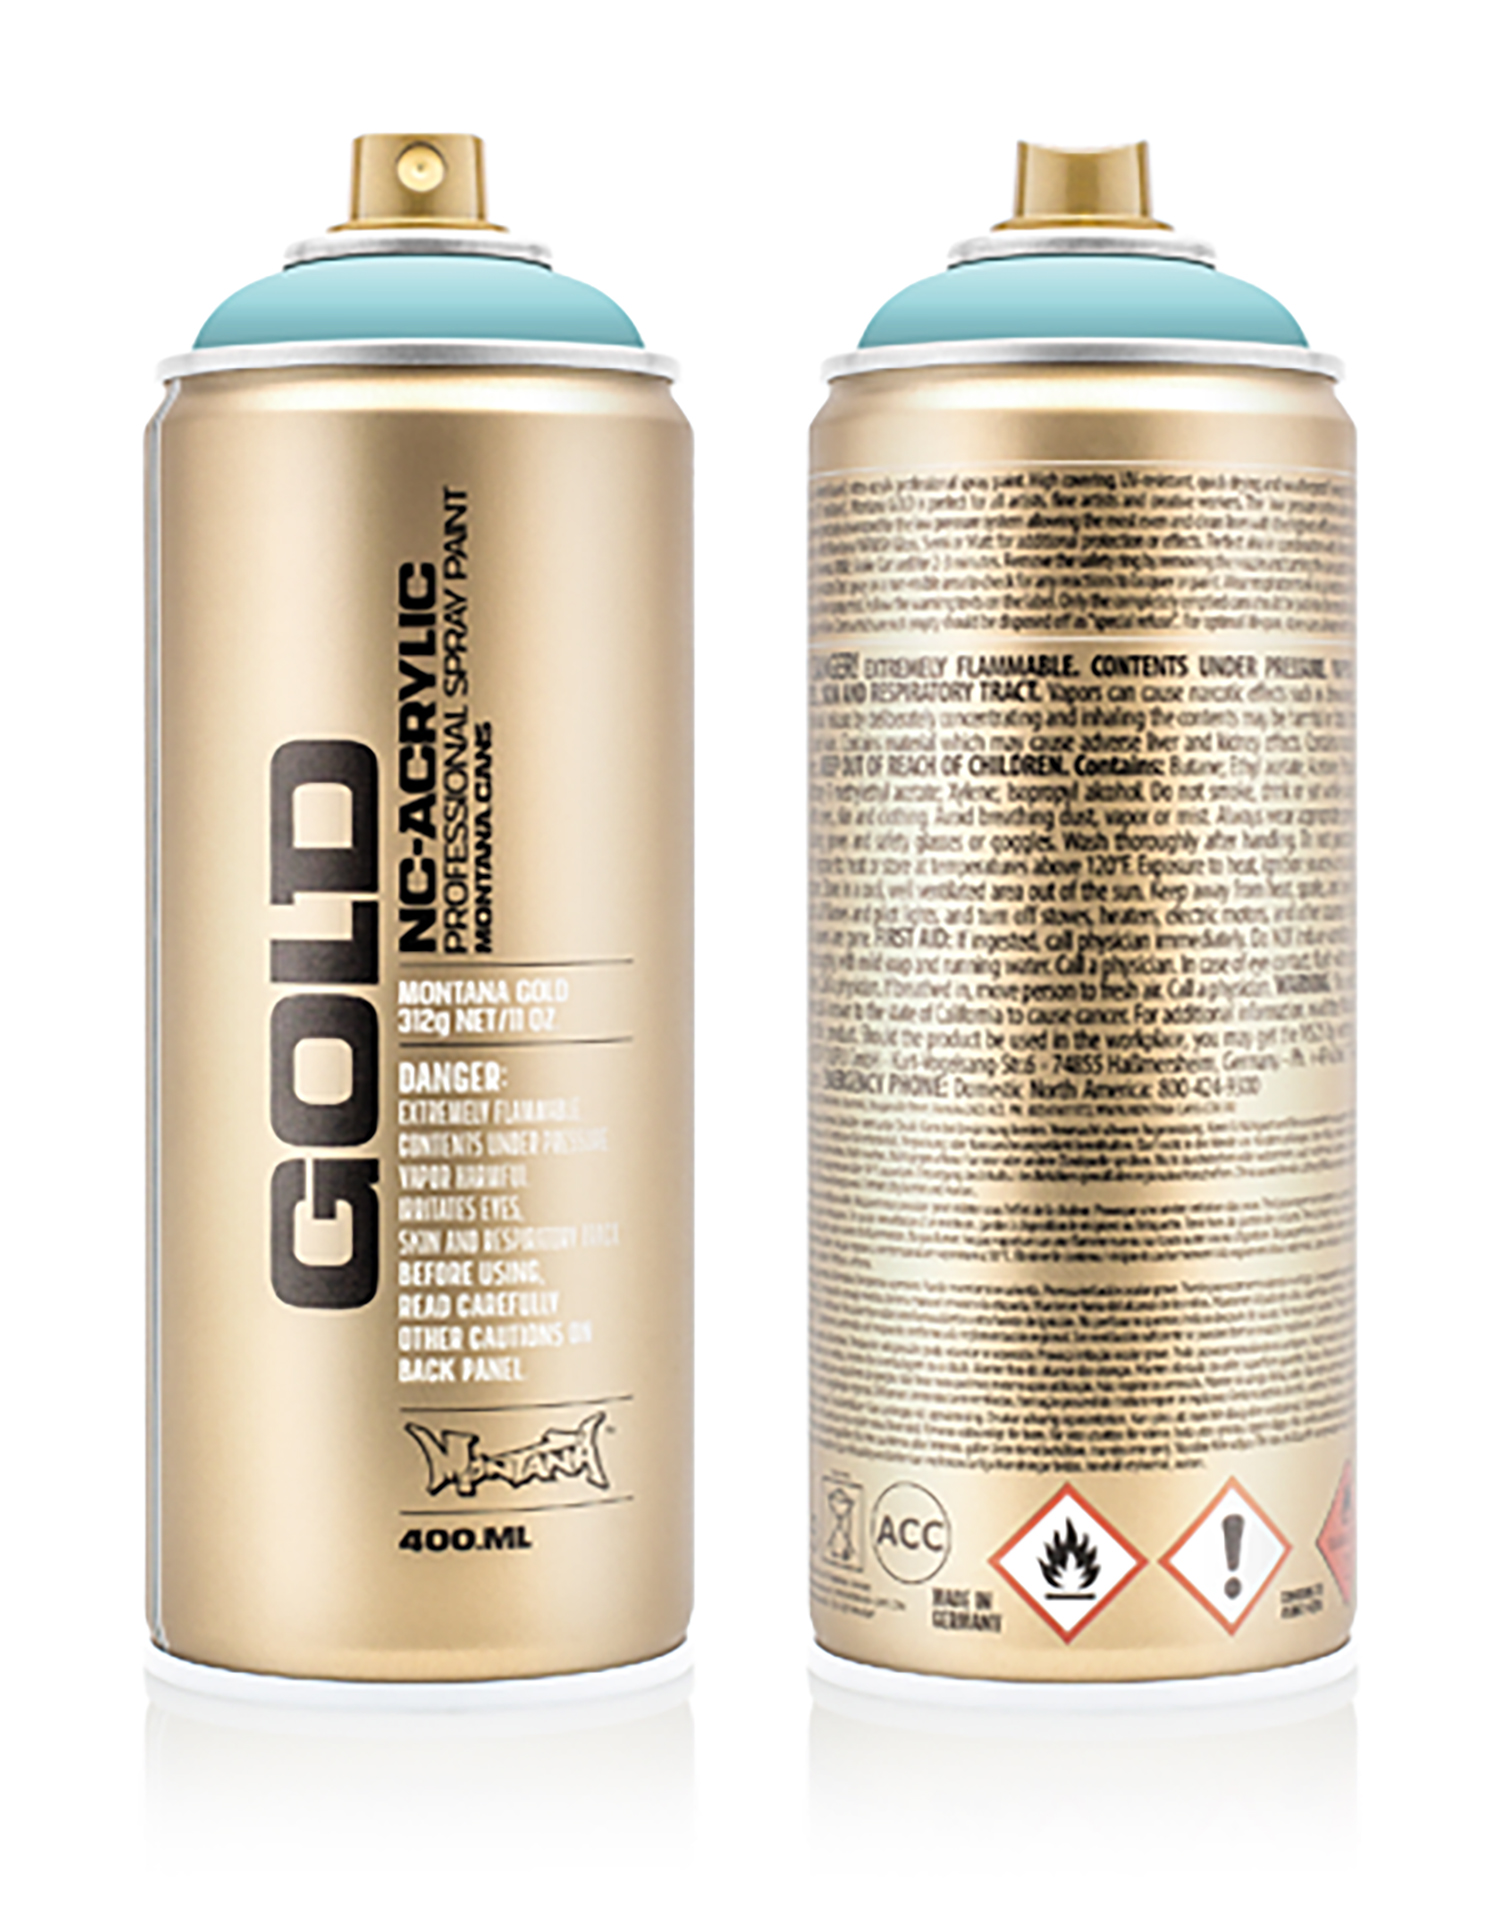 MONTANA-GOLD-SPRAY-400ML-G-6230